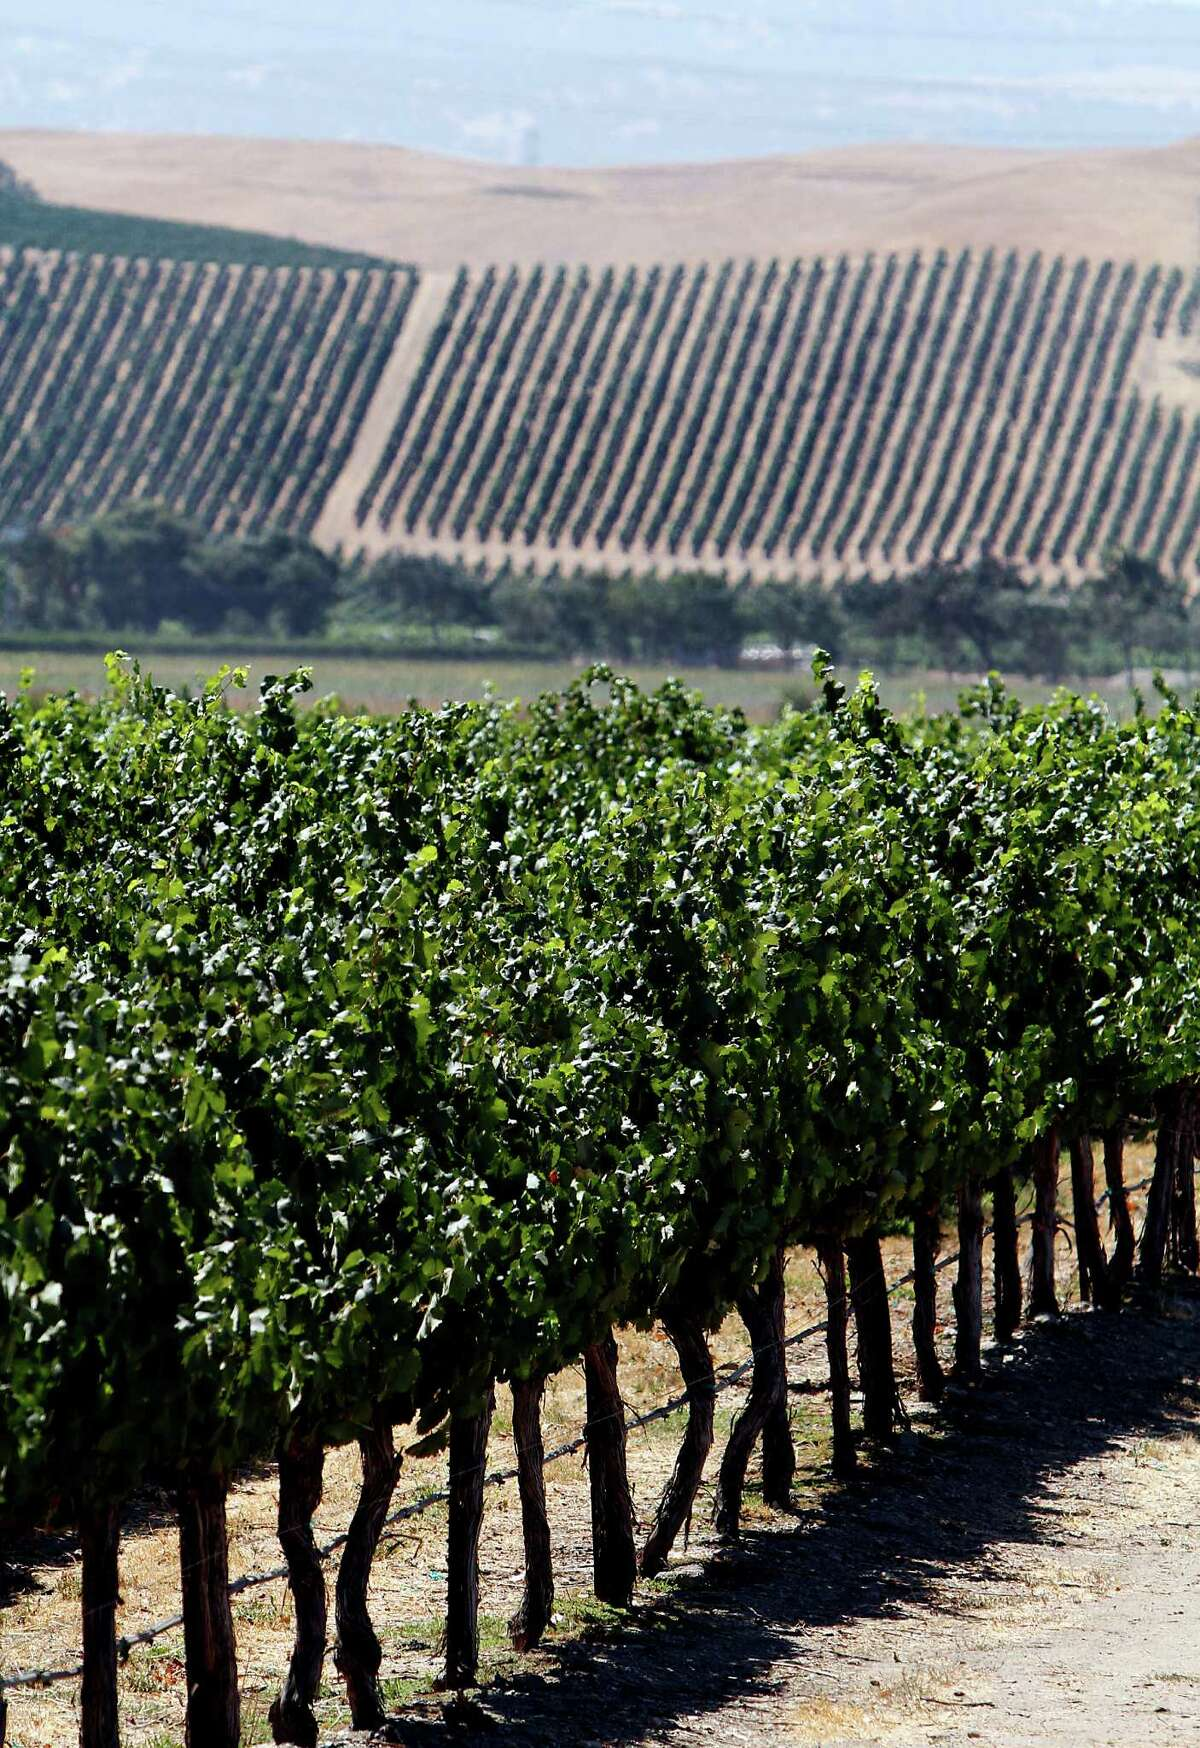 Vineyards in Livermore, where TerrAvion was launched in early 2013.